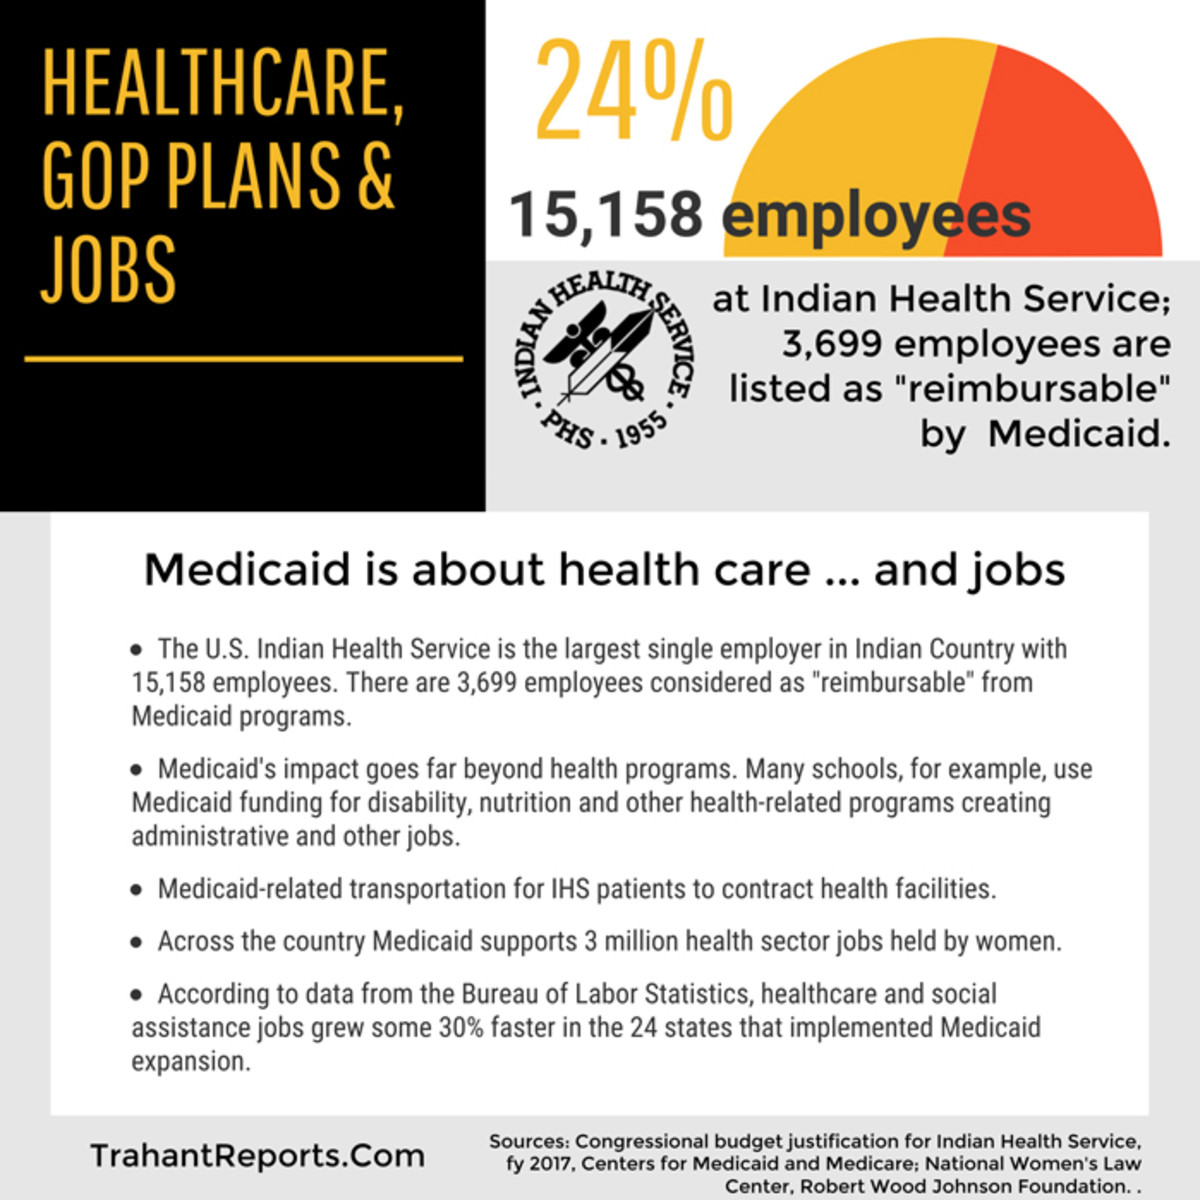 Medicaid is about health care … and jobs